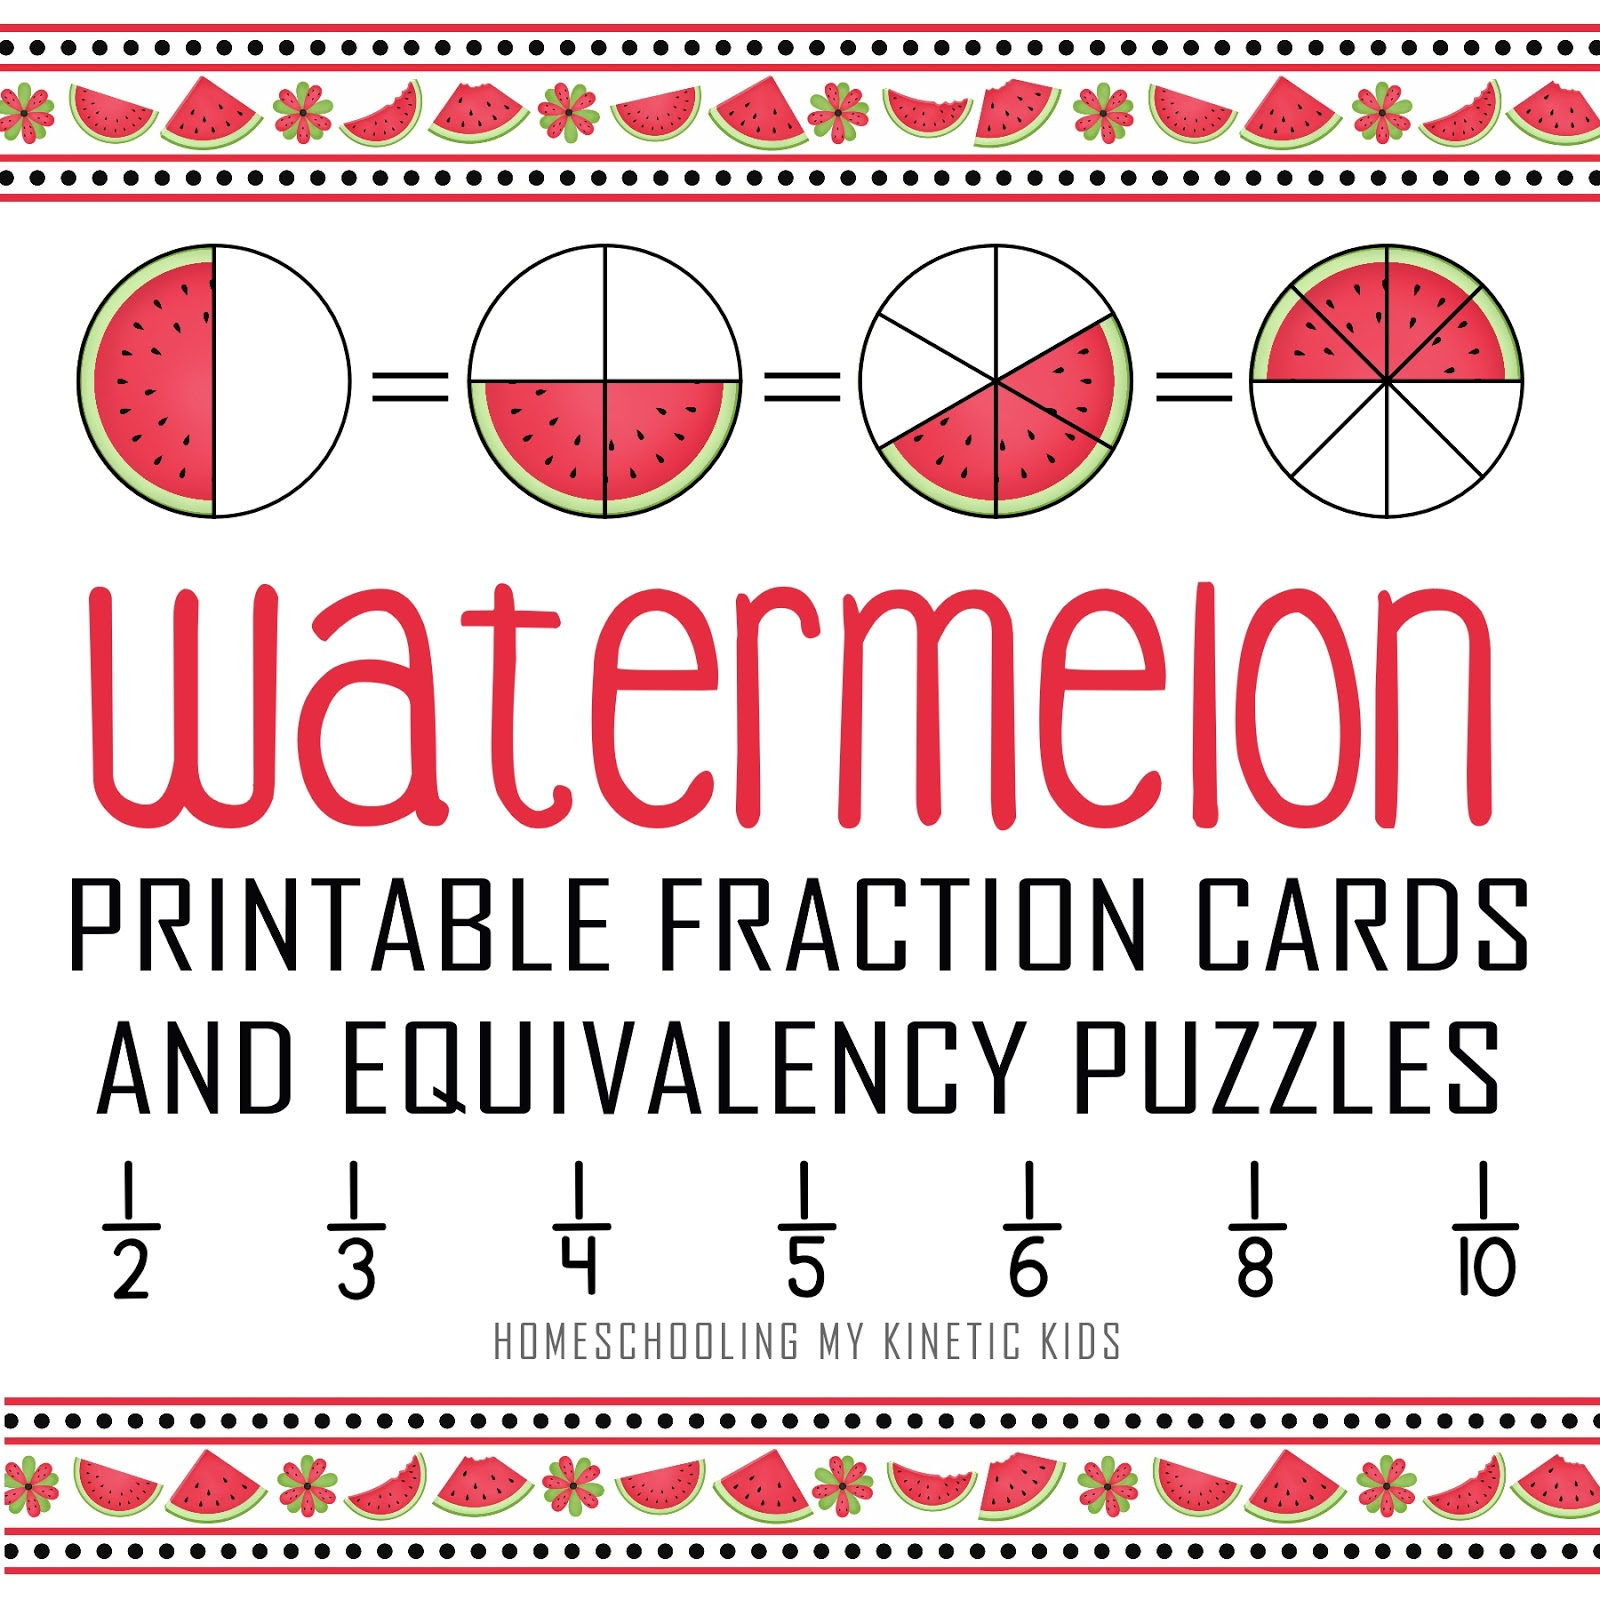 image about Fraction Cards Printable titled Watermelon 3-Aspect Portion Playing cards